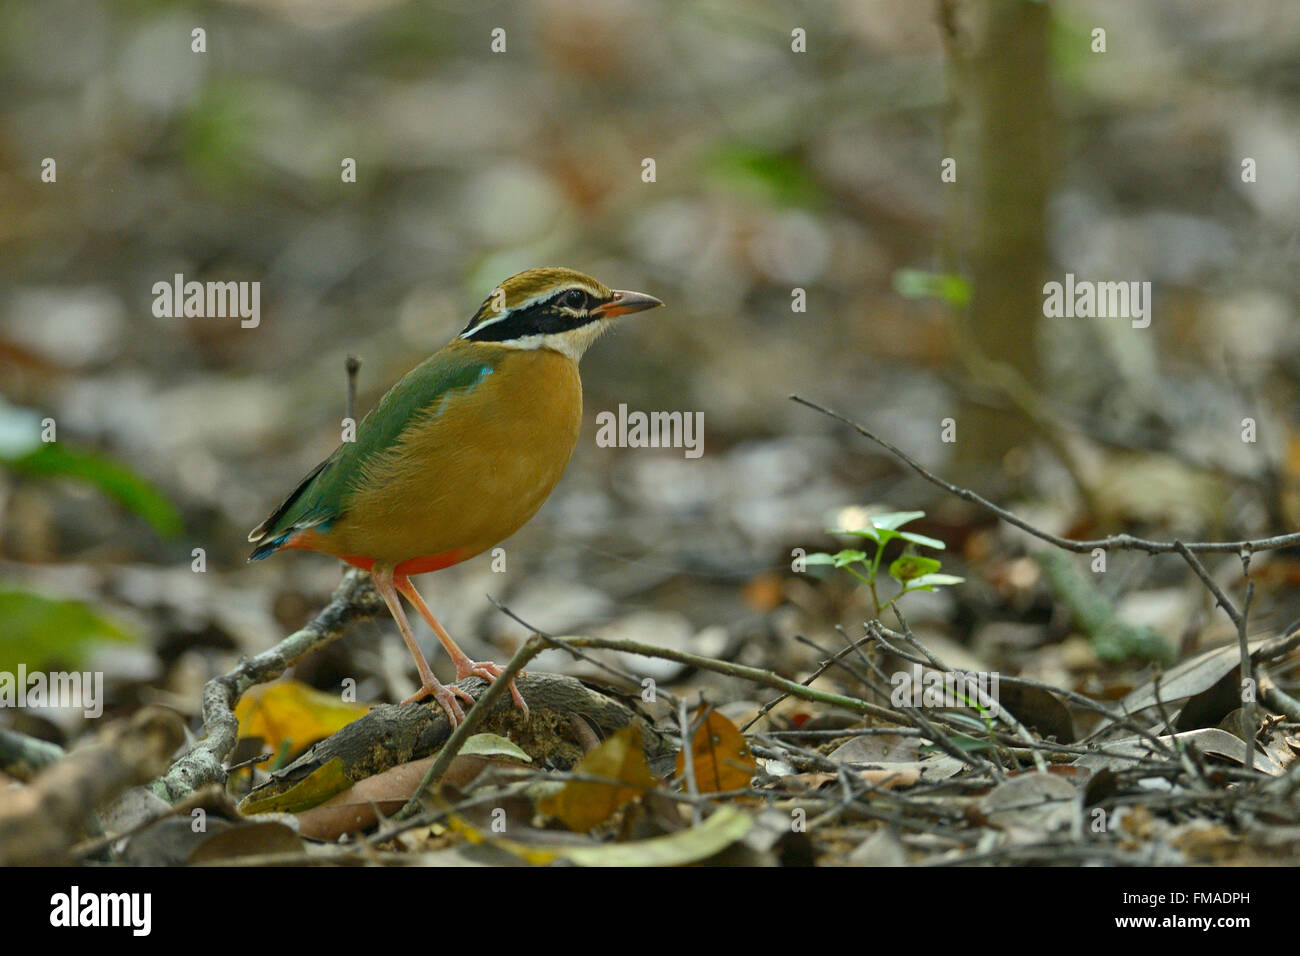 Indian pitta (Pitta brachyura) in Wilpattue national park in Sri Lanka - Stock Image